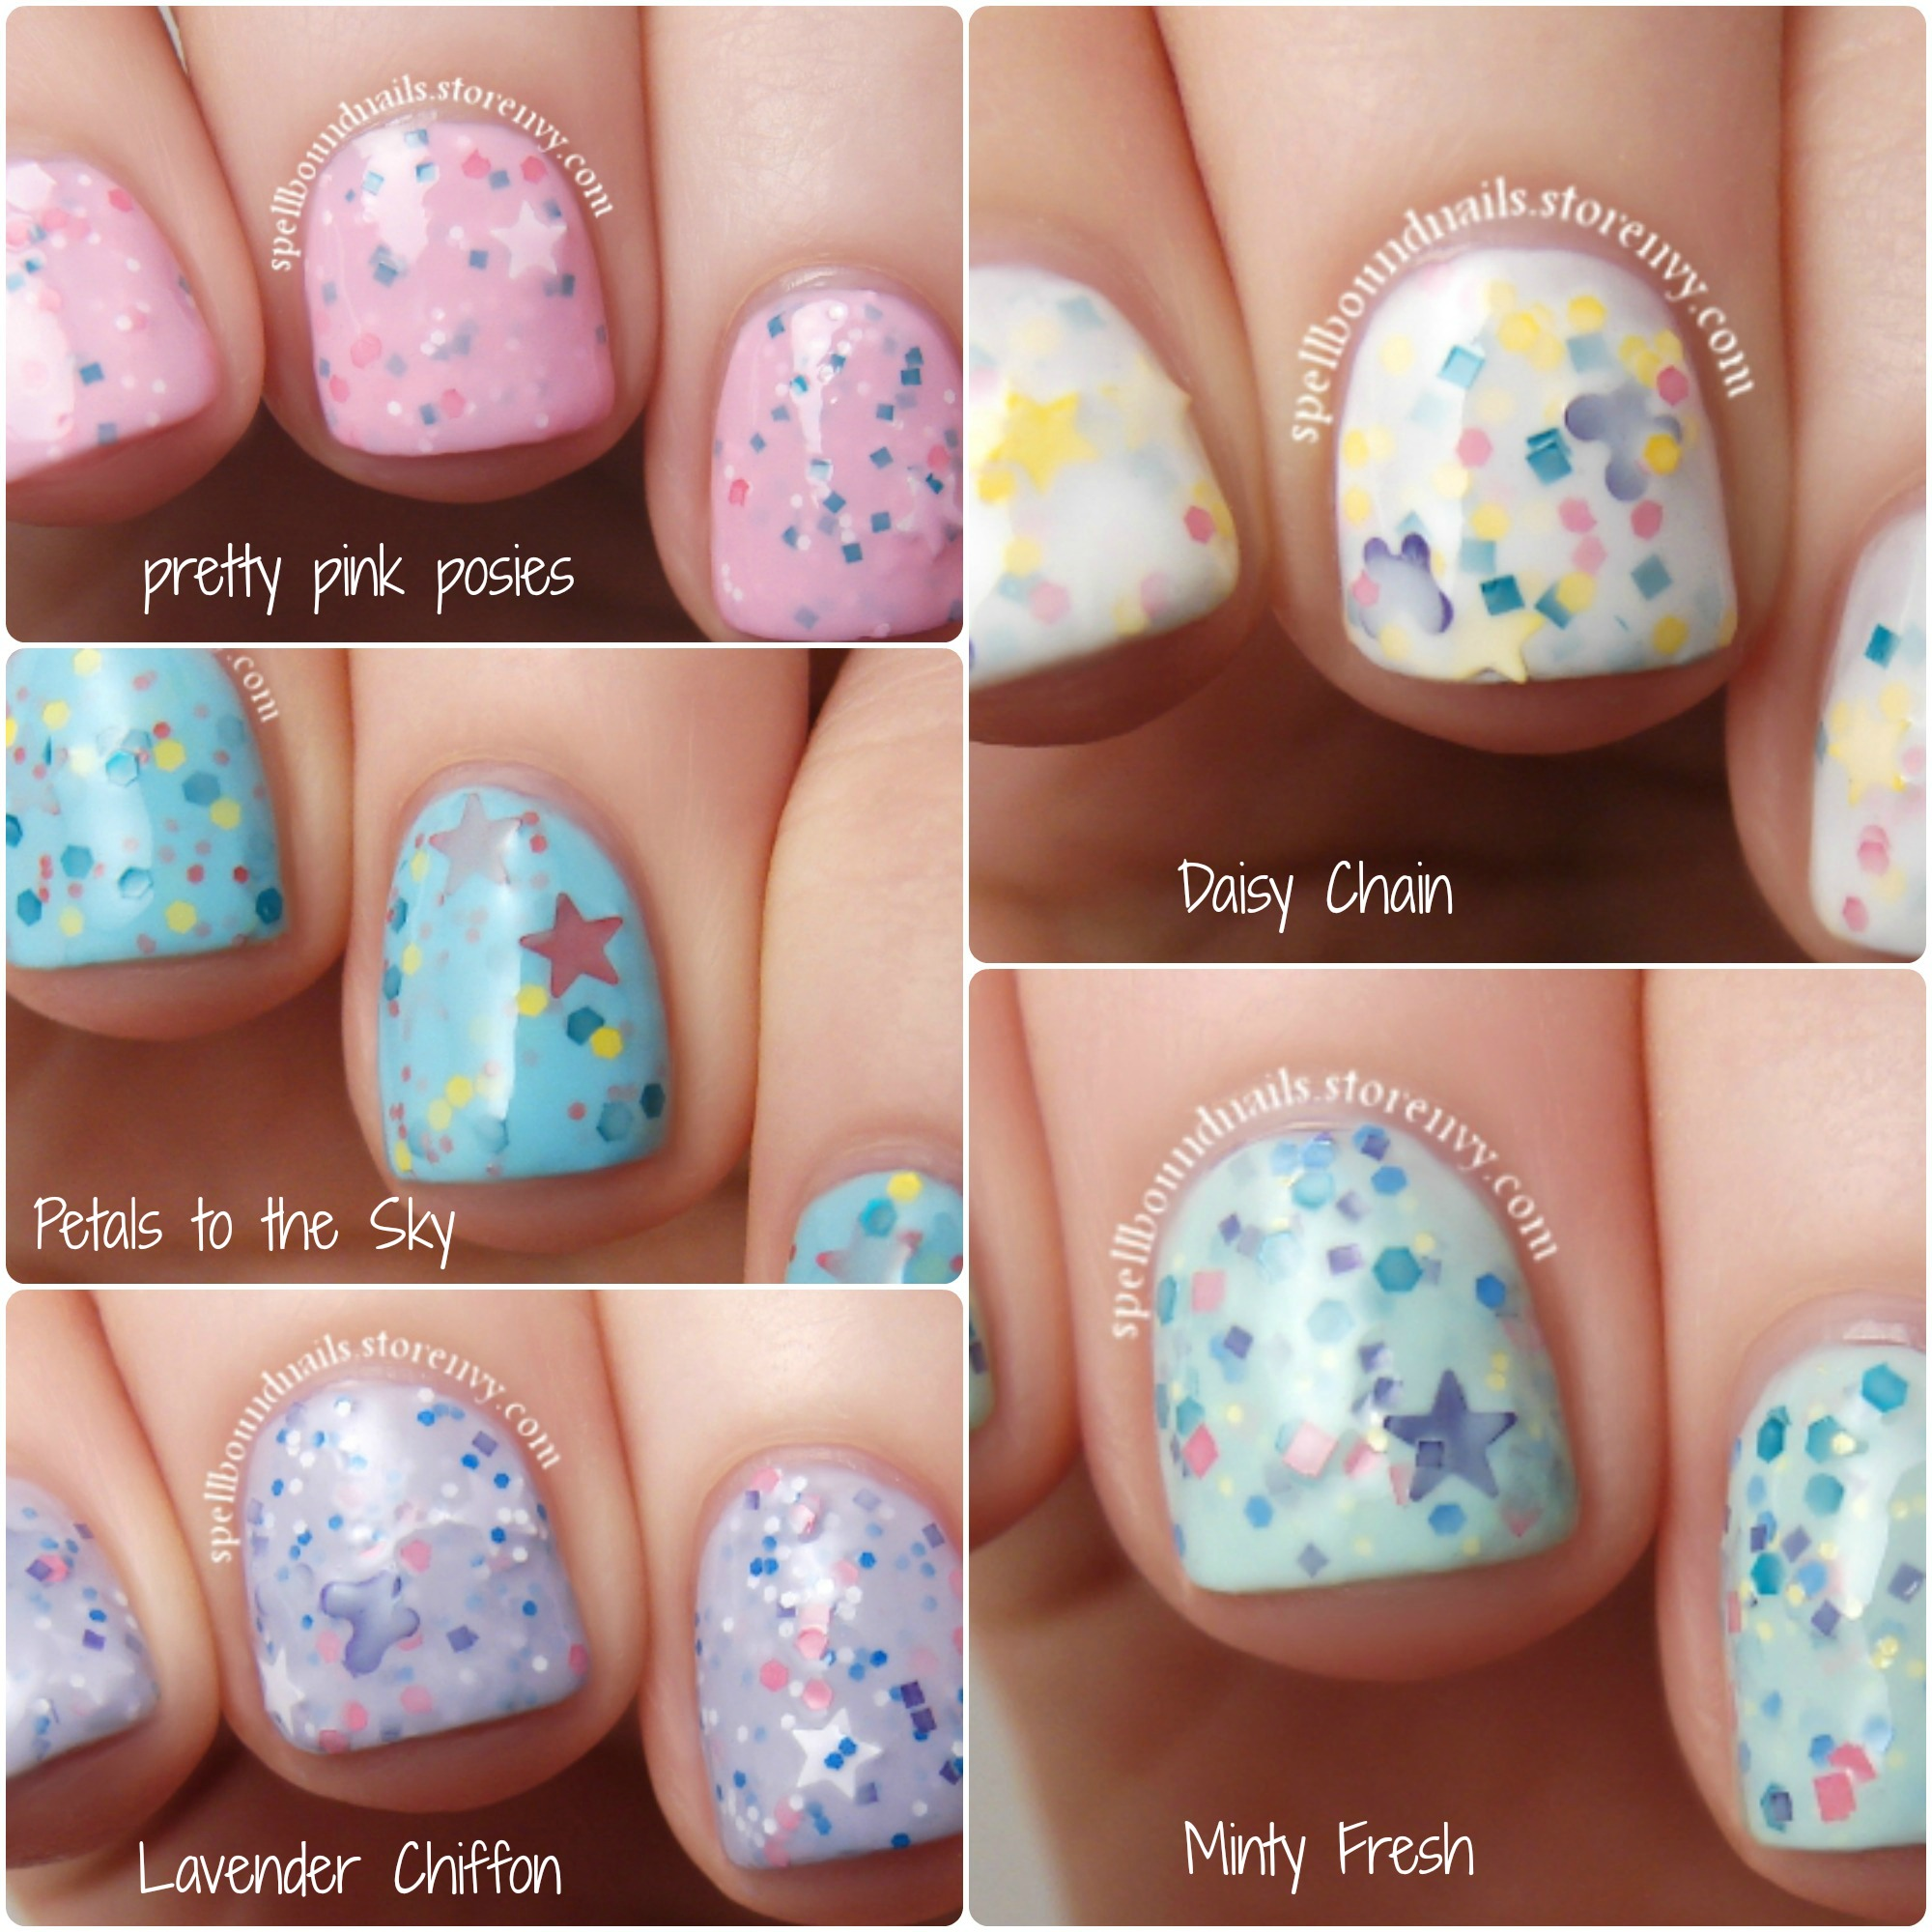 MINI - Spring 2014 Collection - Custom Pastel Glitter Crelly Nail Polish from Spellbound Nails